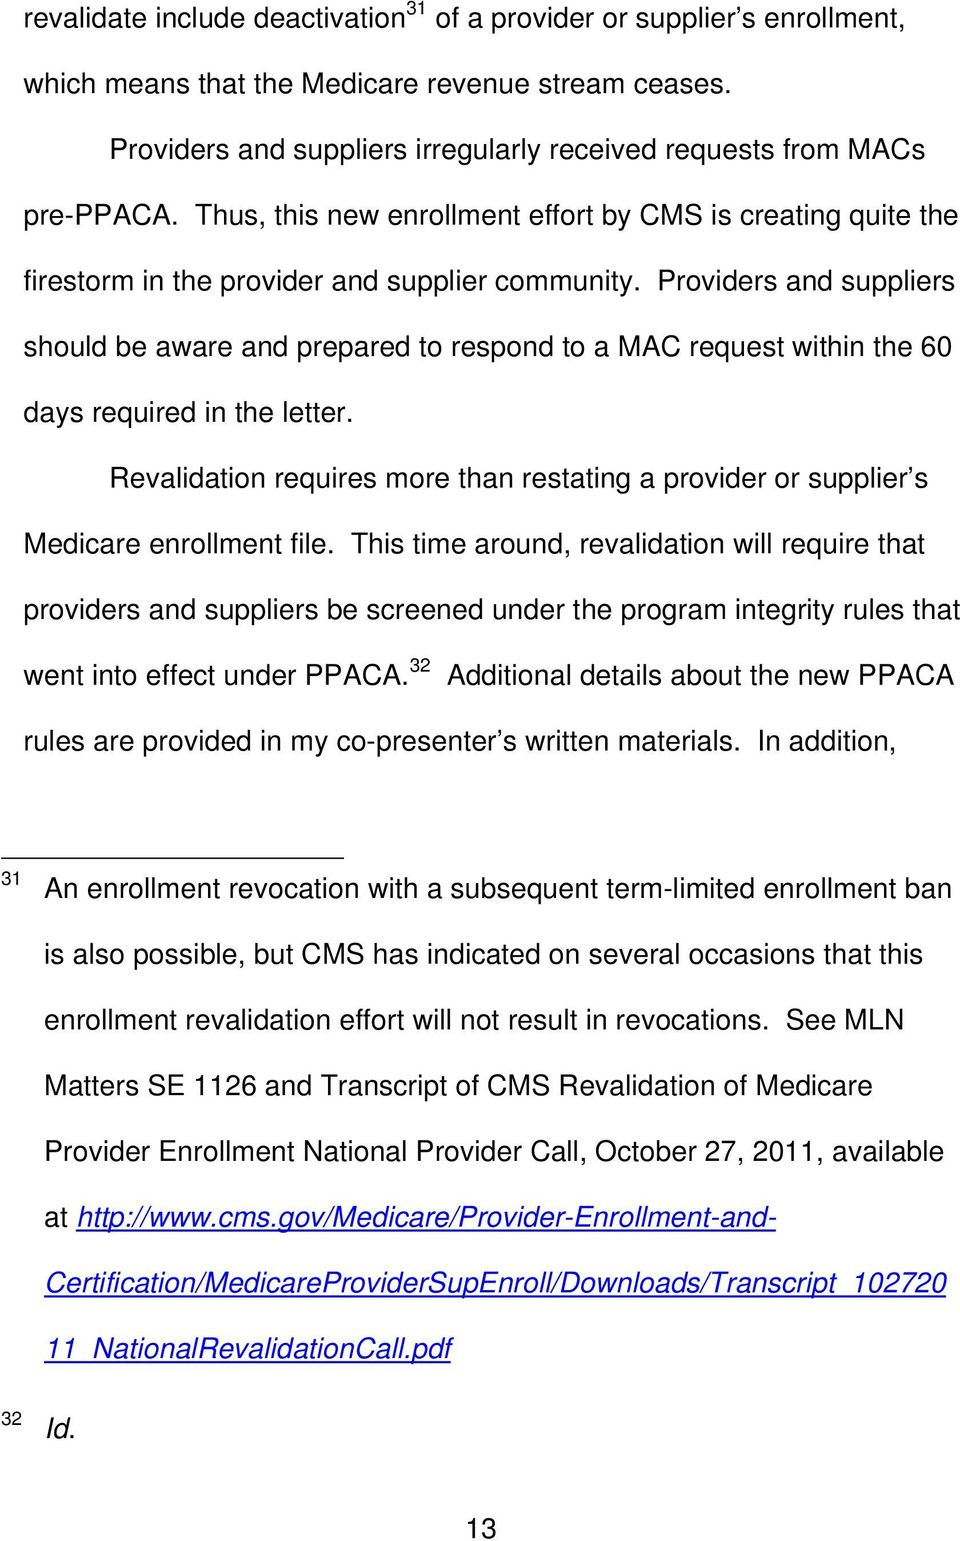 Providers and suppliers should be aware and prepared to respond to a MAC request within the 60 days required in the letter.